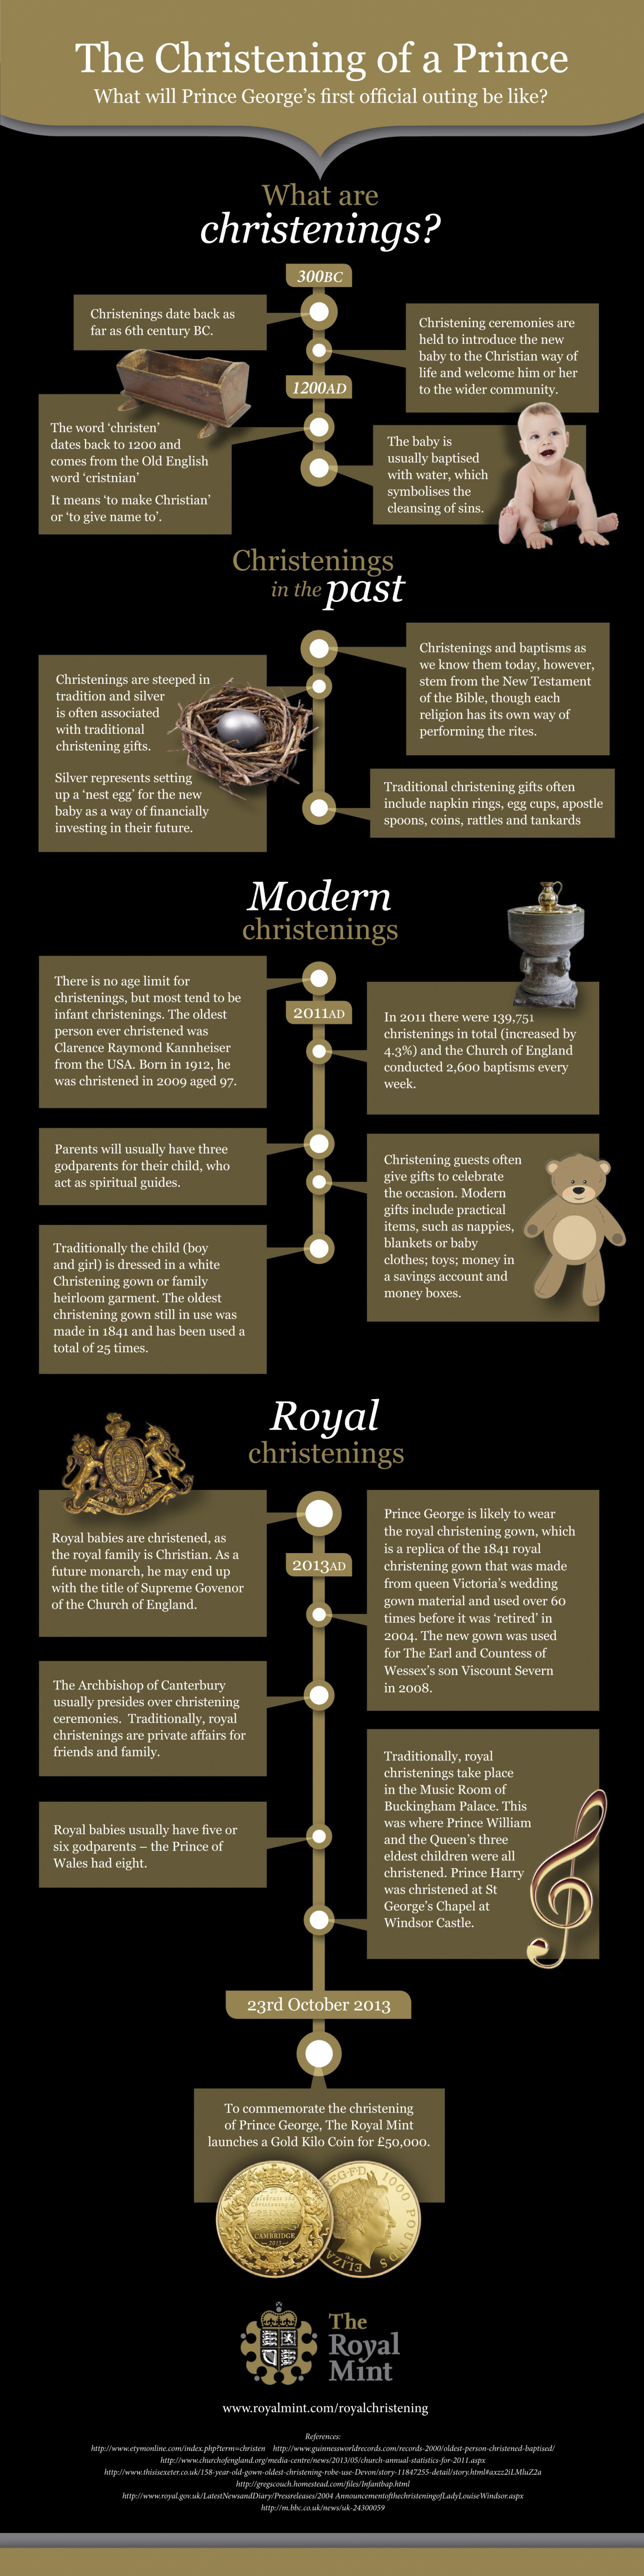 The Christening of a Prince Infographic